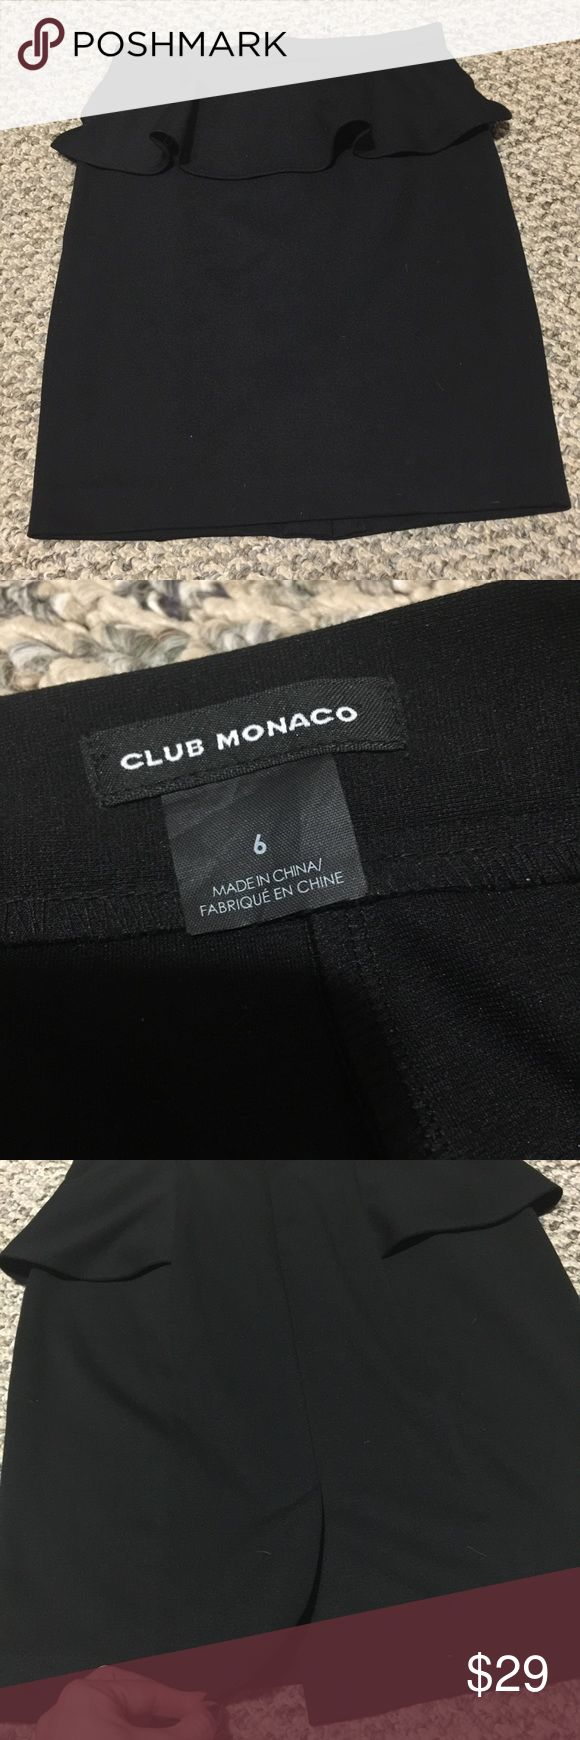 "Club Monaco Pencil peplum skirt Great for office this fall! Black peplum skirt Club Monaco . Size 6. Length 20""; hip 36 in relaxed. Stretchy material polyester/ rayon / elastane. Condition like new . Club Monaco Skirts Pencil"